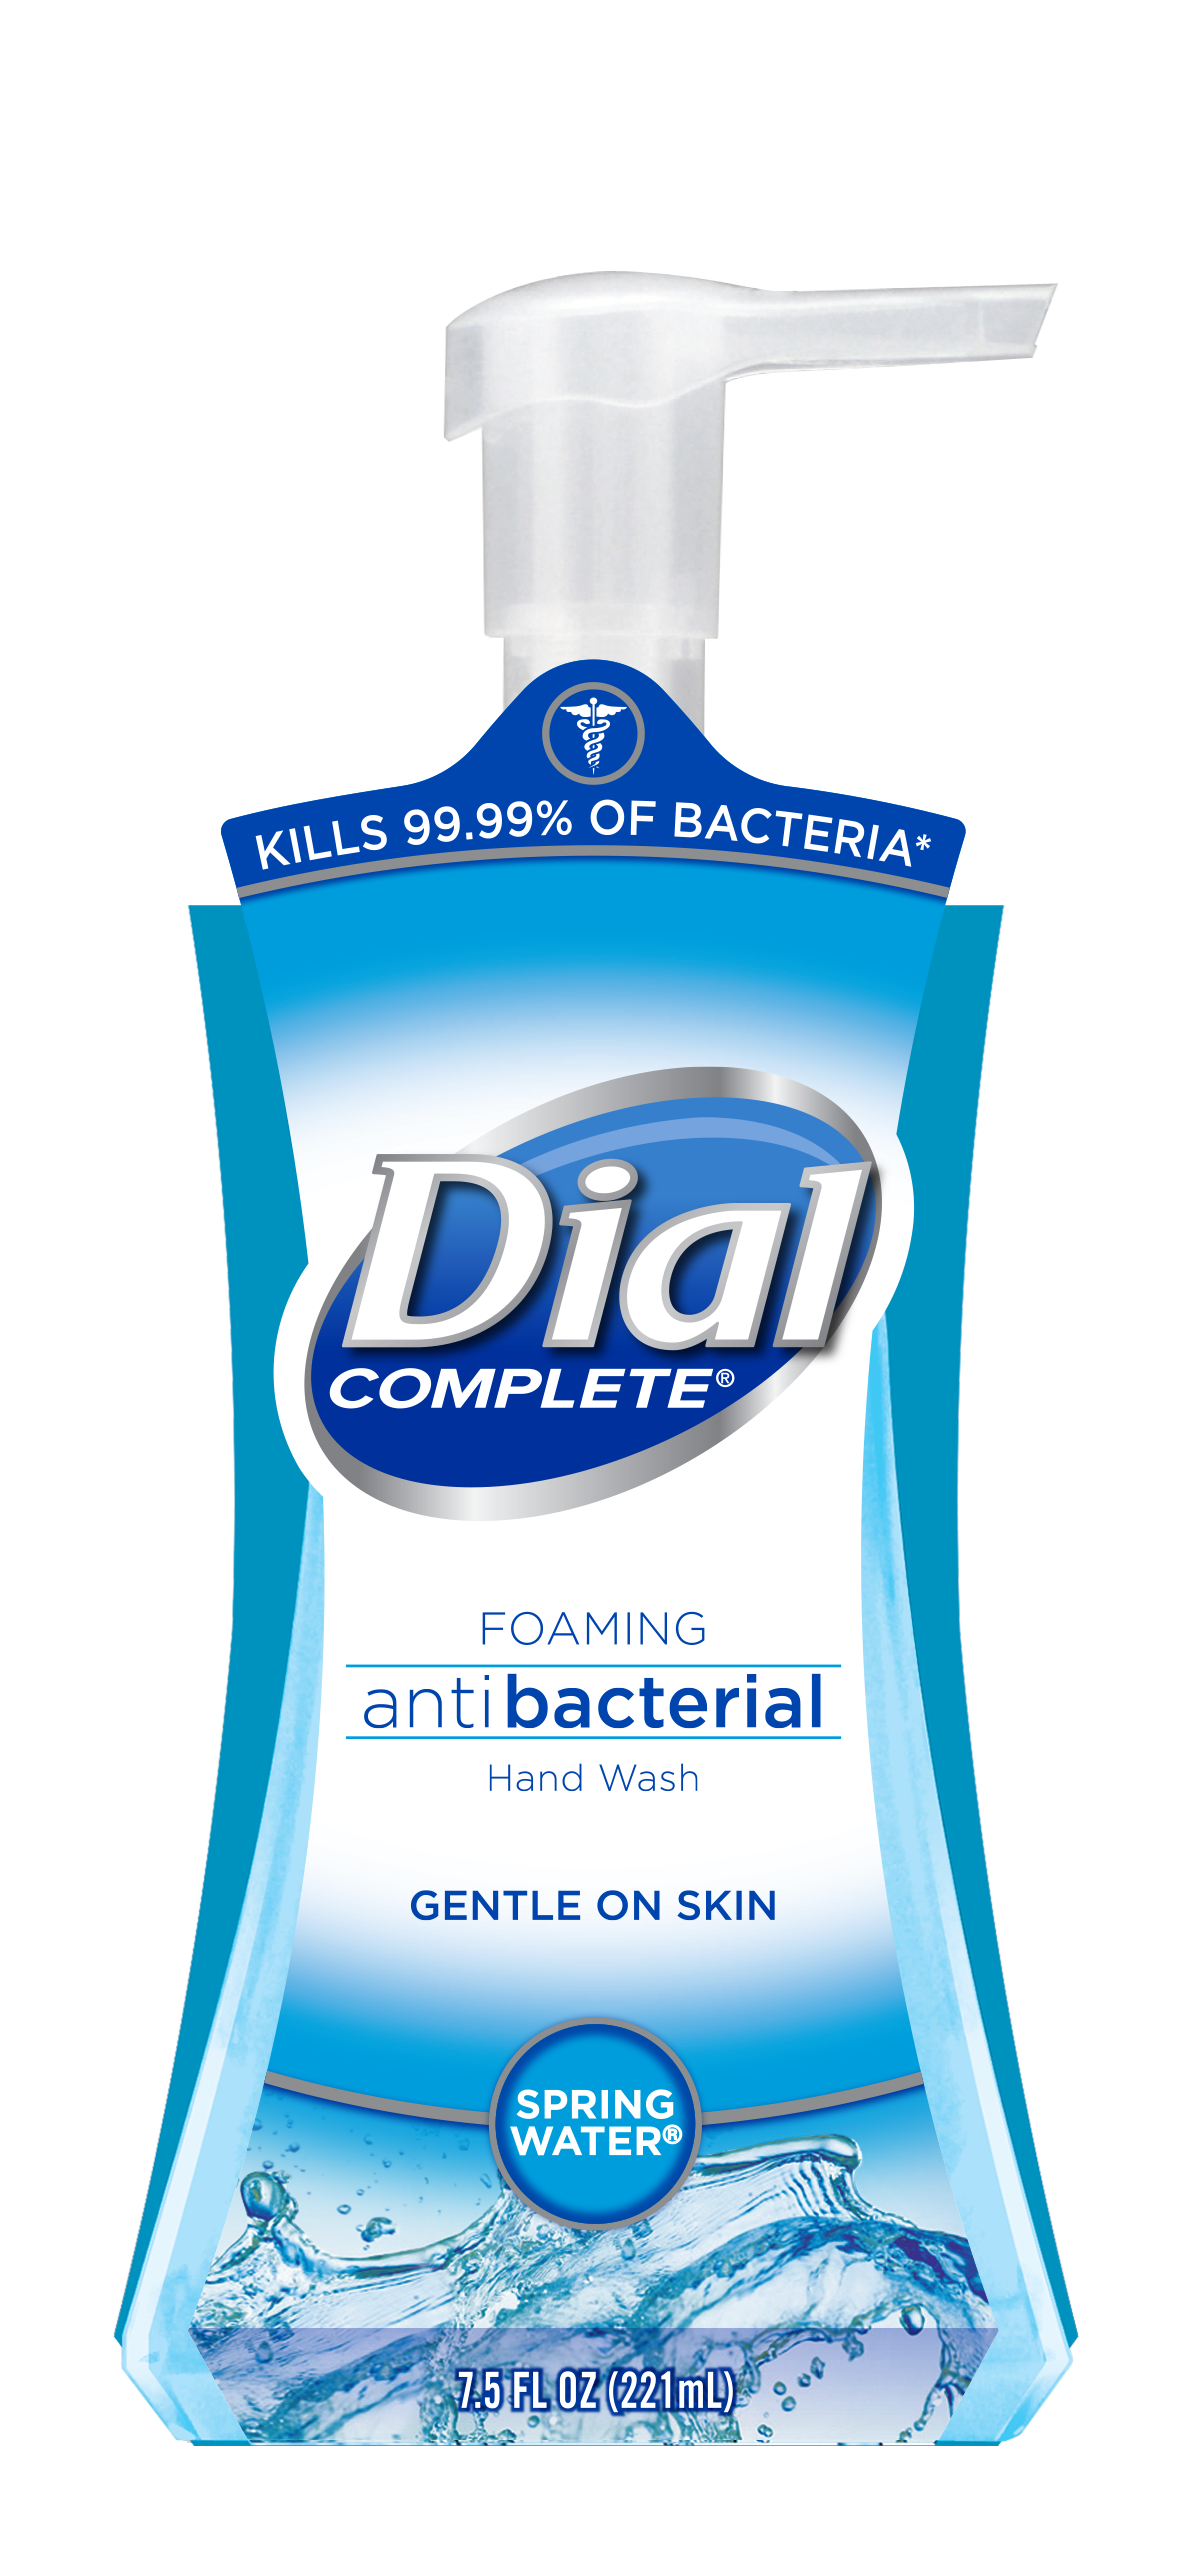 Dial Complete Antibacterial Foaming Hand Wash Spring Water 7 5 Ounce From Walmart In Austin Tx Burpy Com